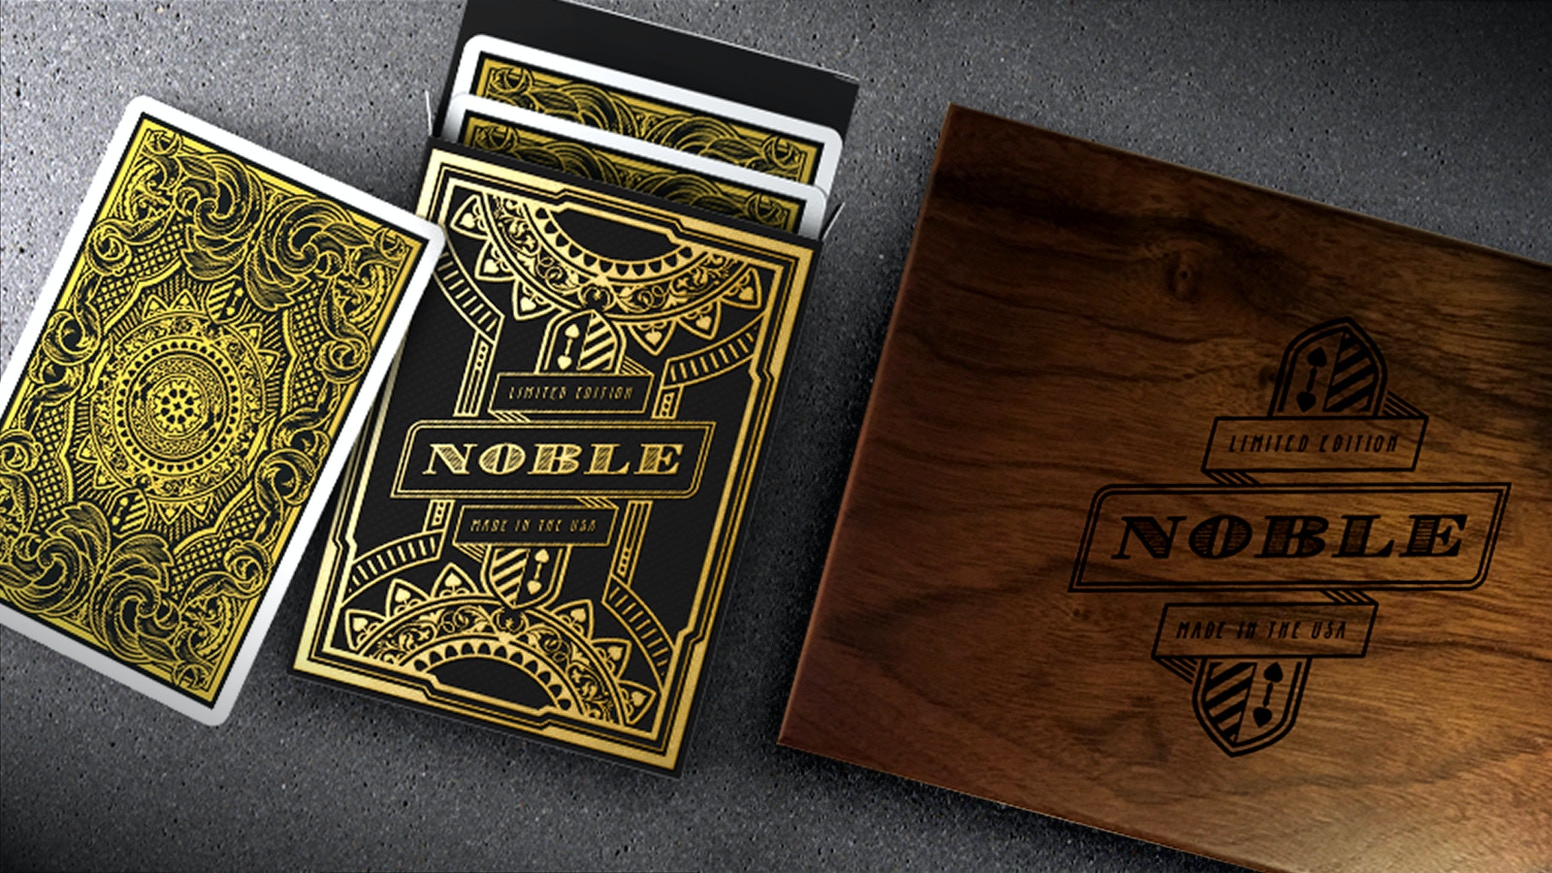 Series of Limited Edition Playing Cards, Inspired by the Noble. Printed by the USPCC.